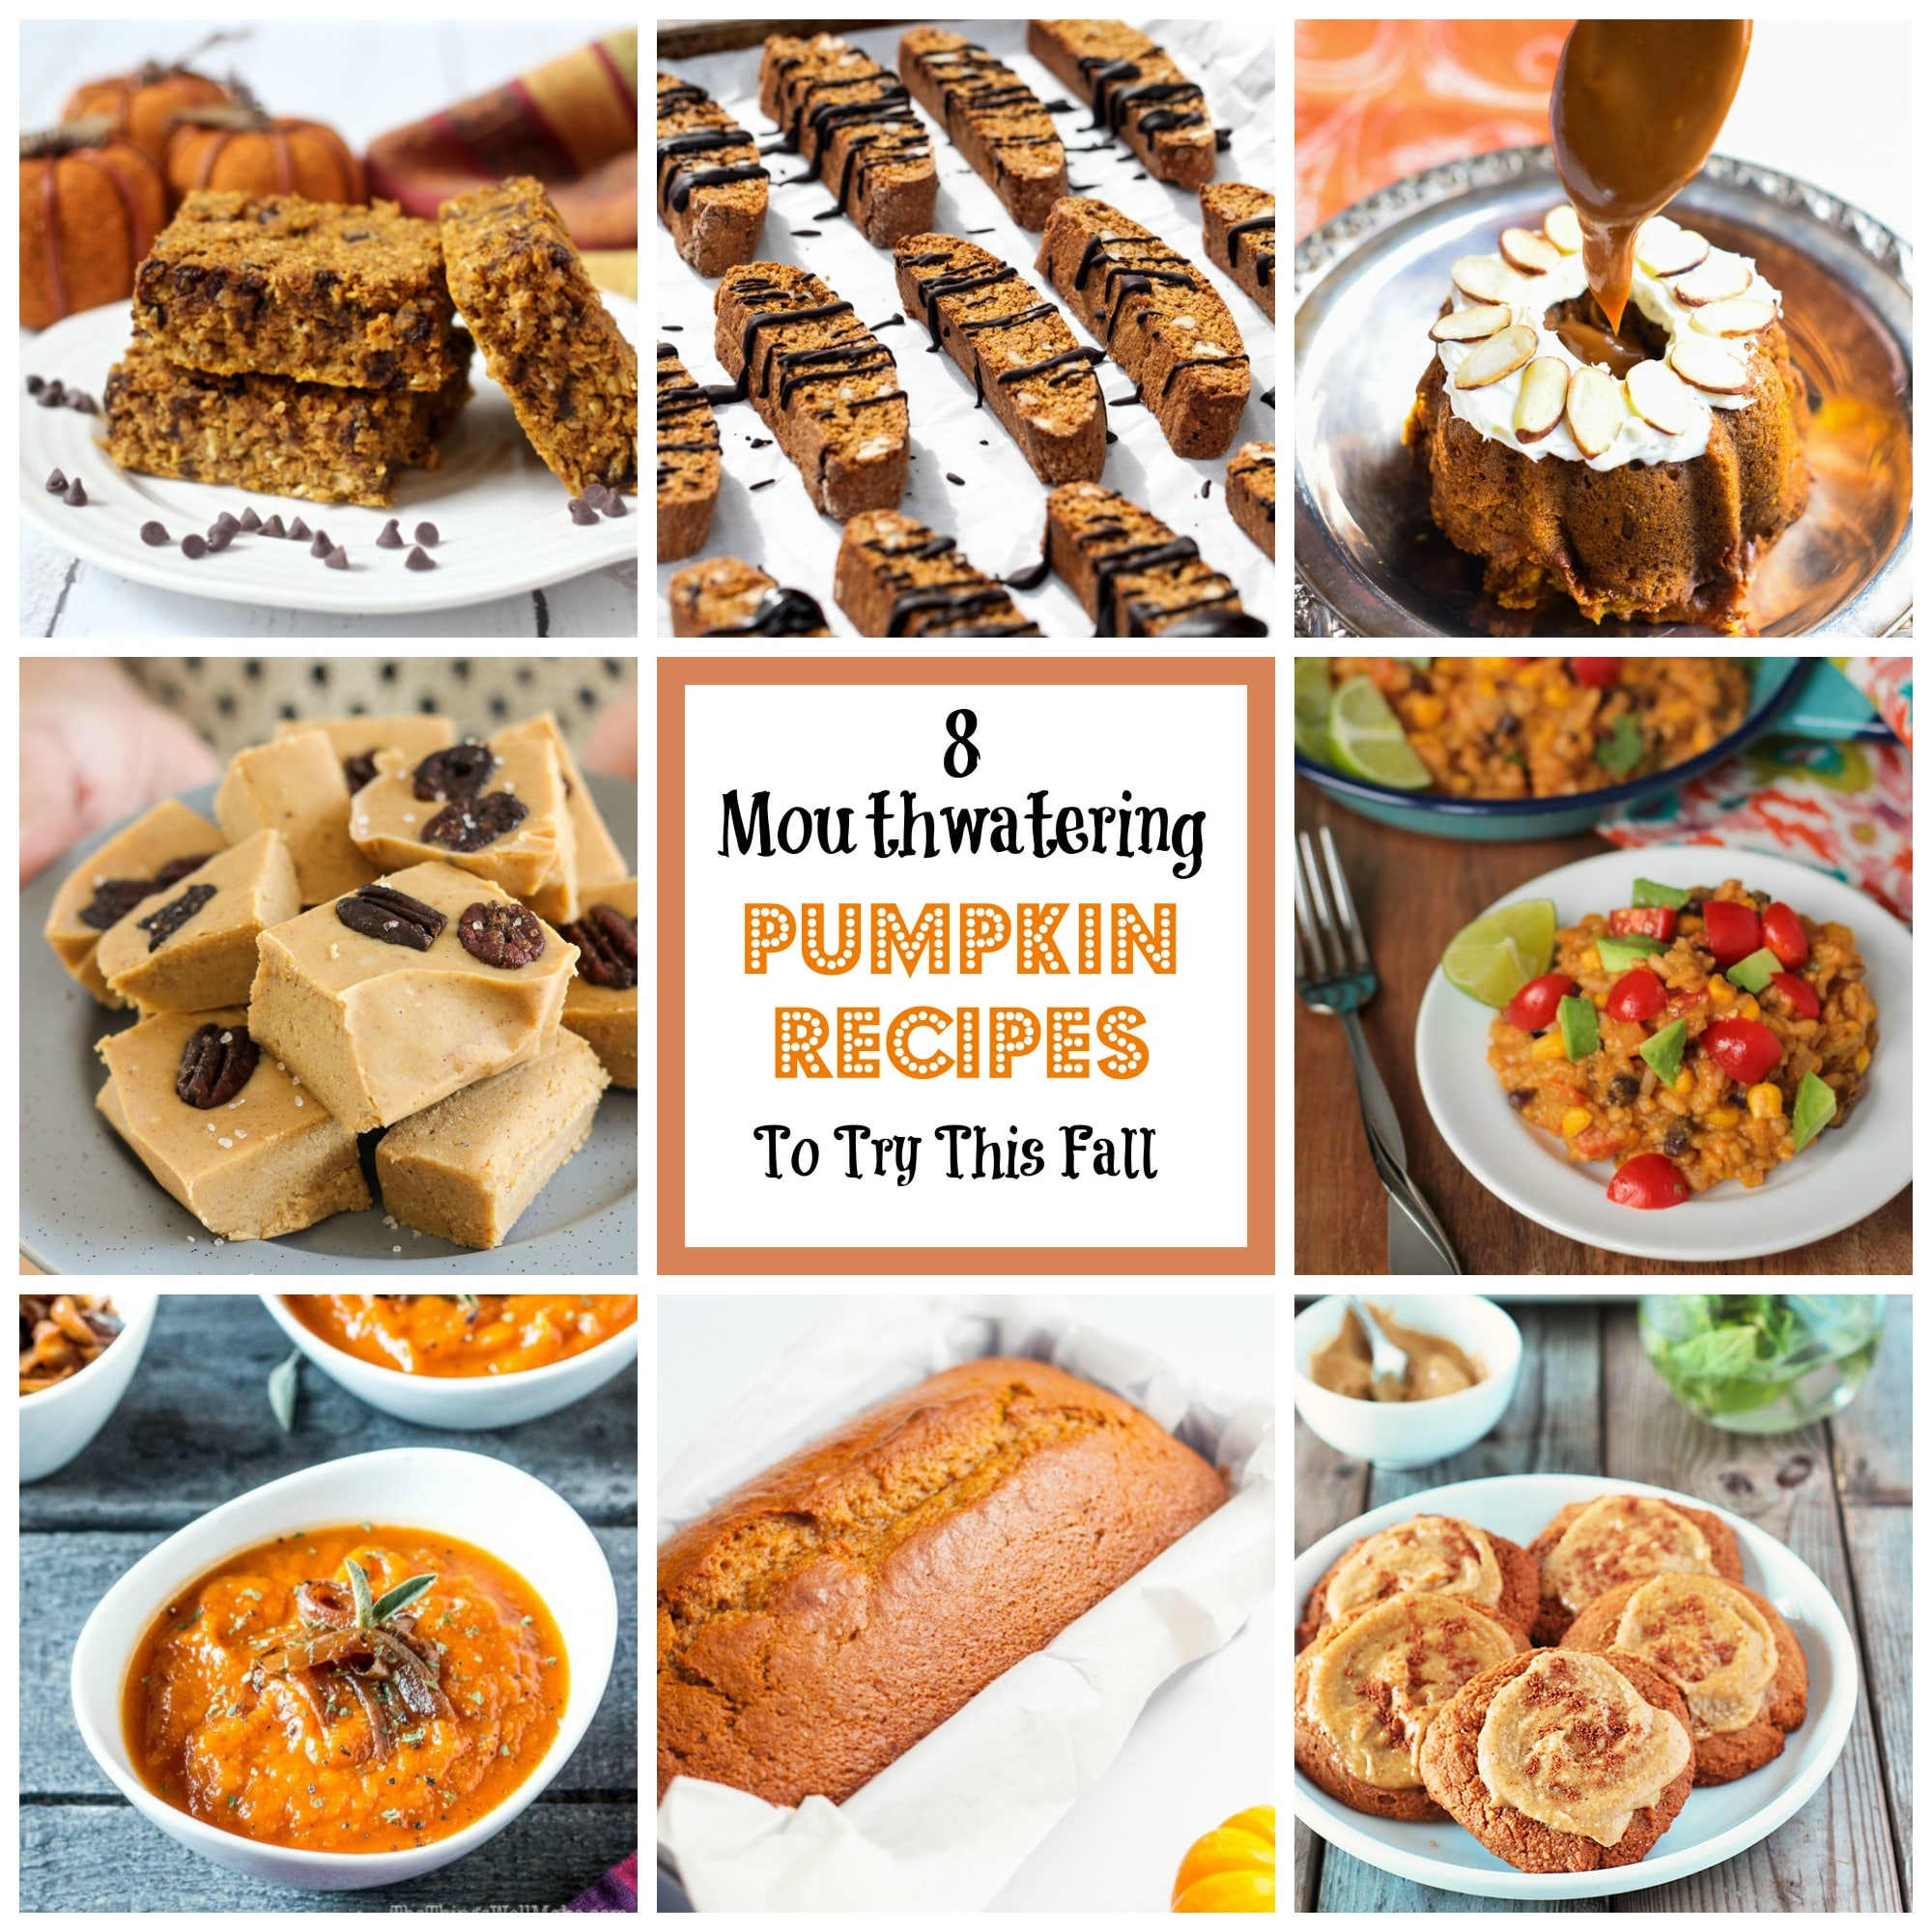 8 Mouthwatering Pumpkin Recipes To Try